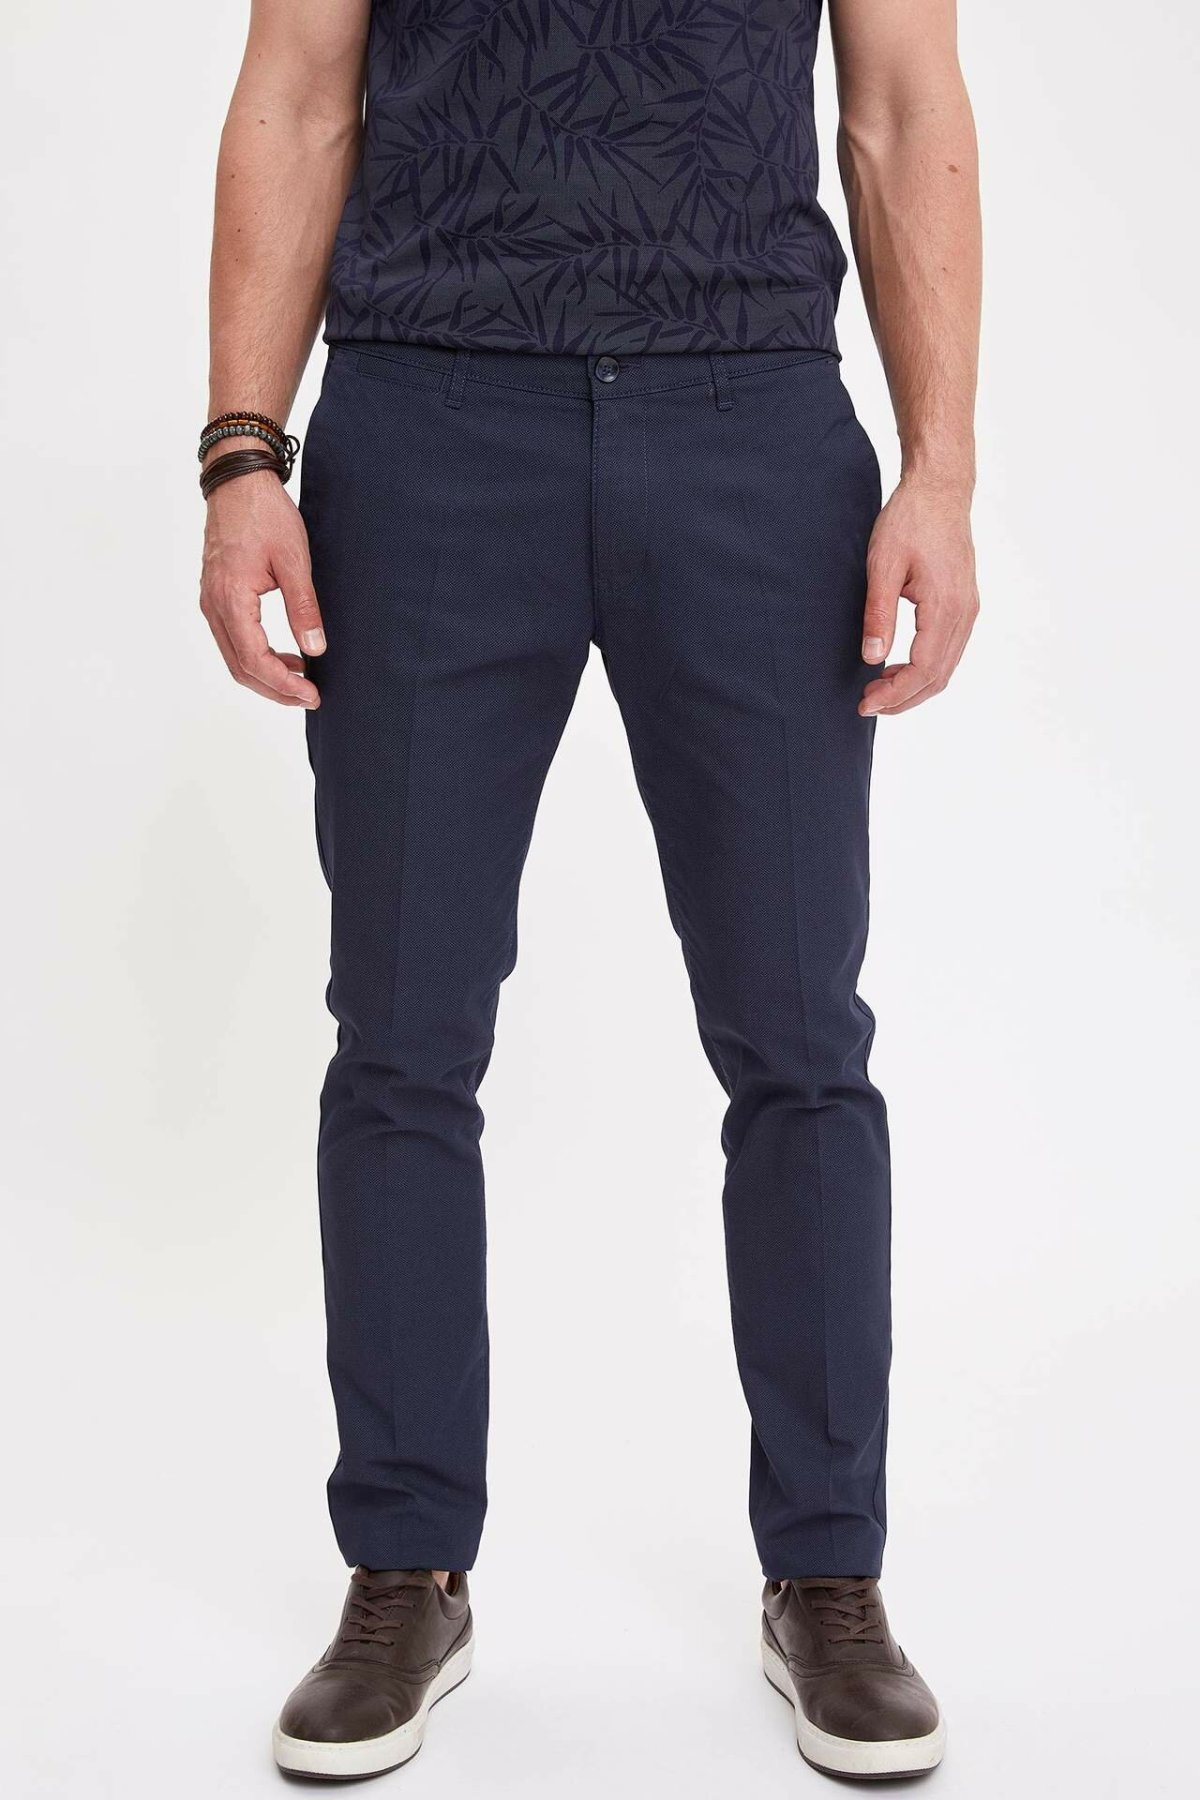 DeFacto Brand Formal Suit Trousers Casual Solid Straight Loose Pants For Men's High Quality Long Pants Men New - K3247AZ19SM